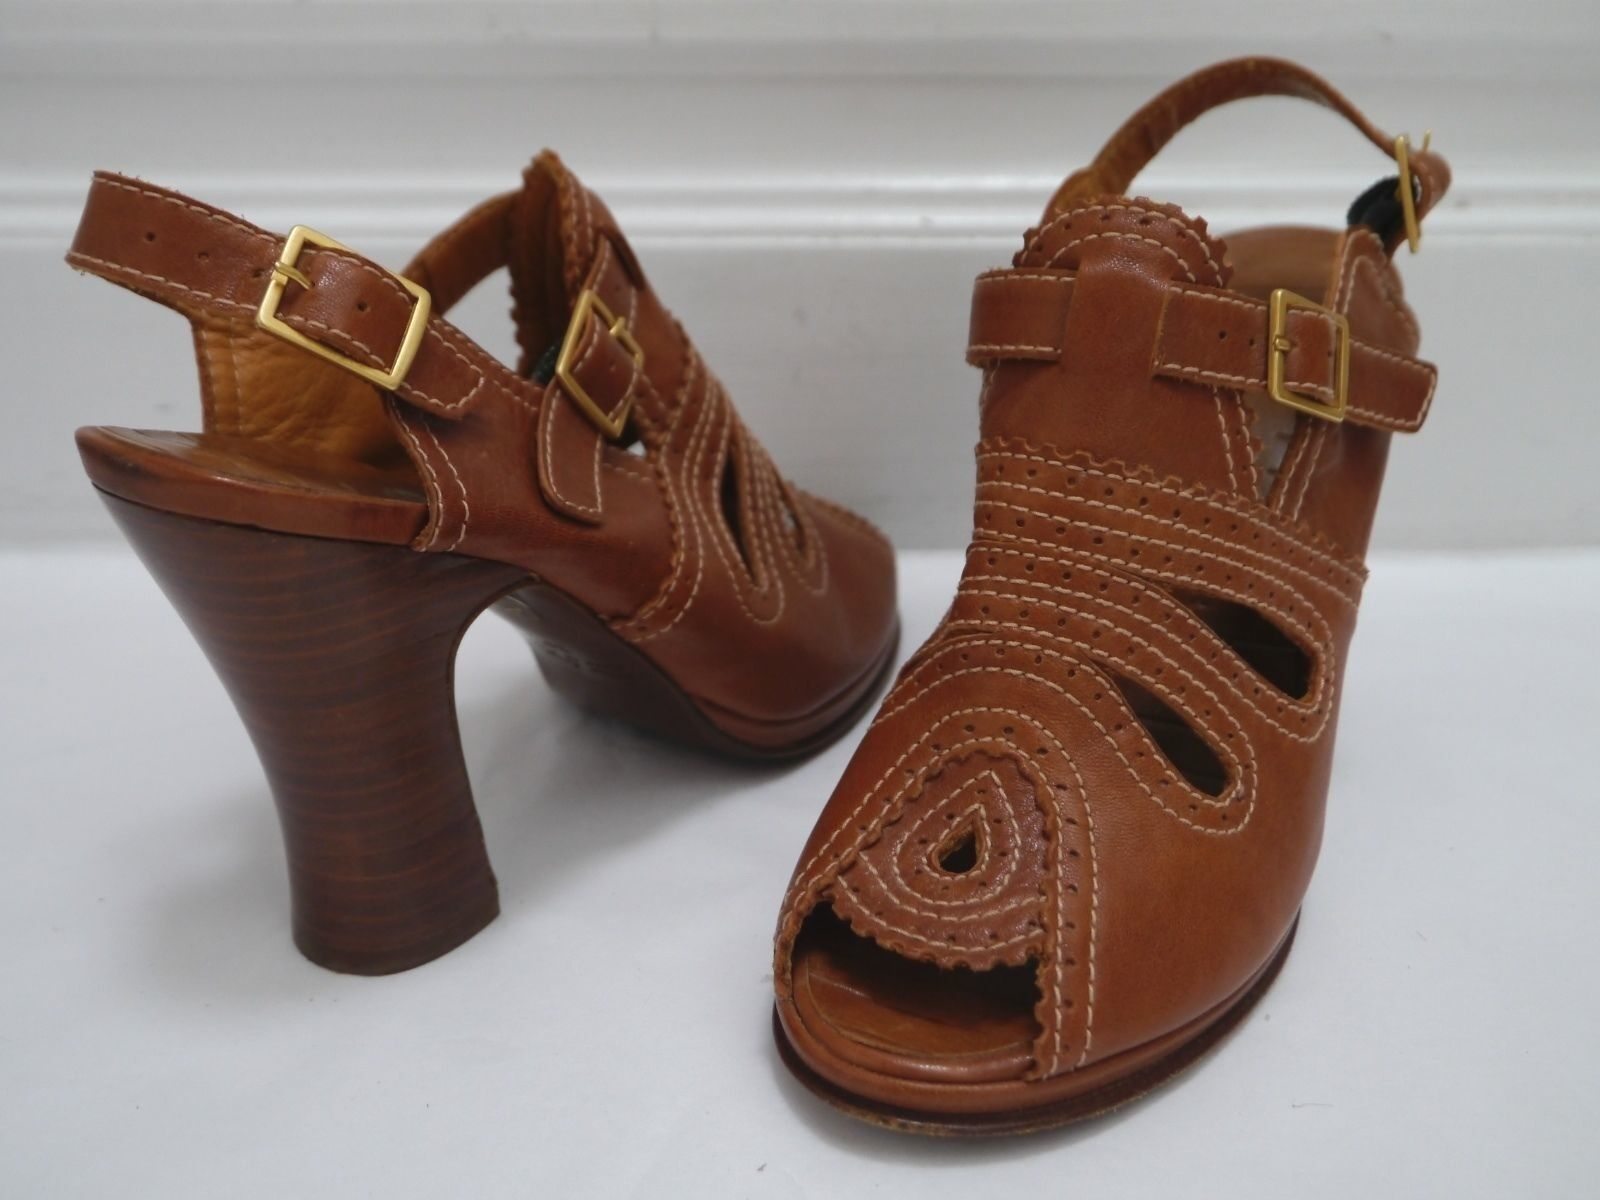 CHIE sandal MIHARA Braun leather cutout peep-toe heels shoes sandal CHIE size 36.5 WORN ONCE de37ed